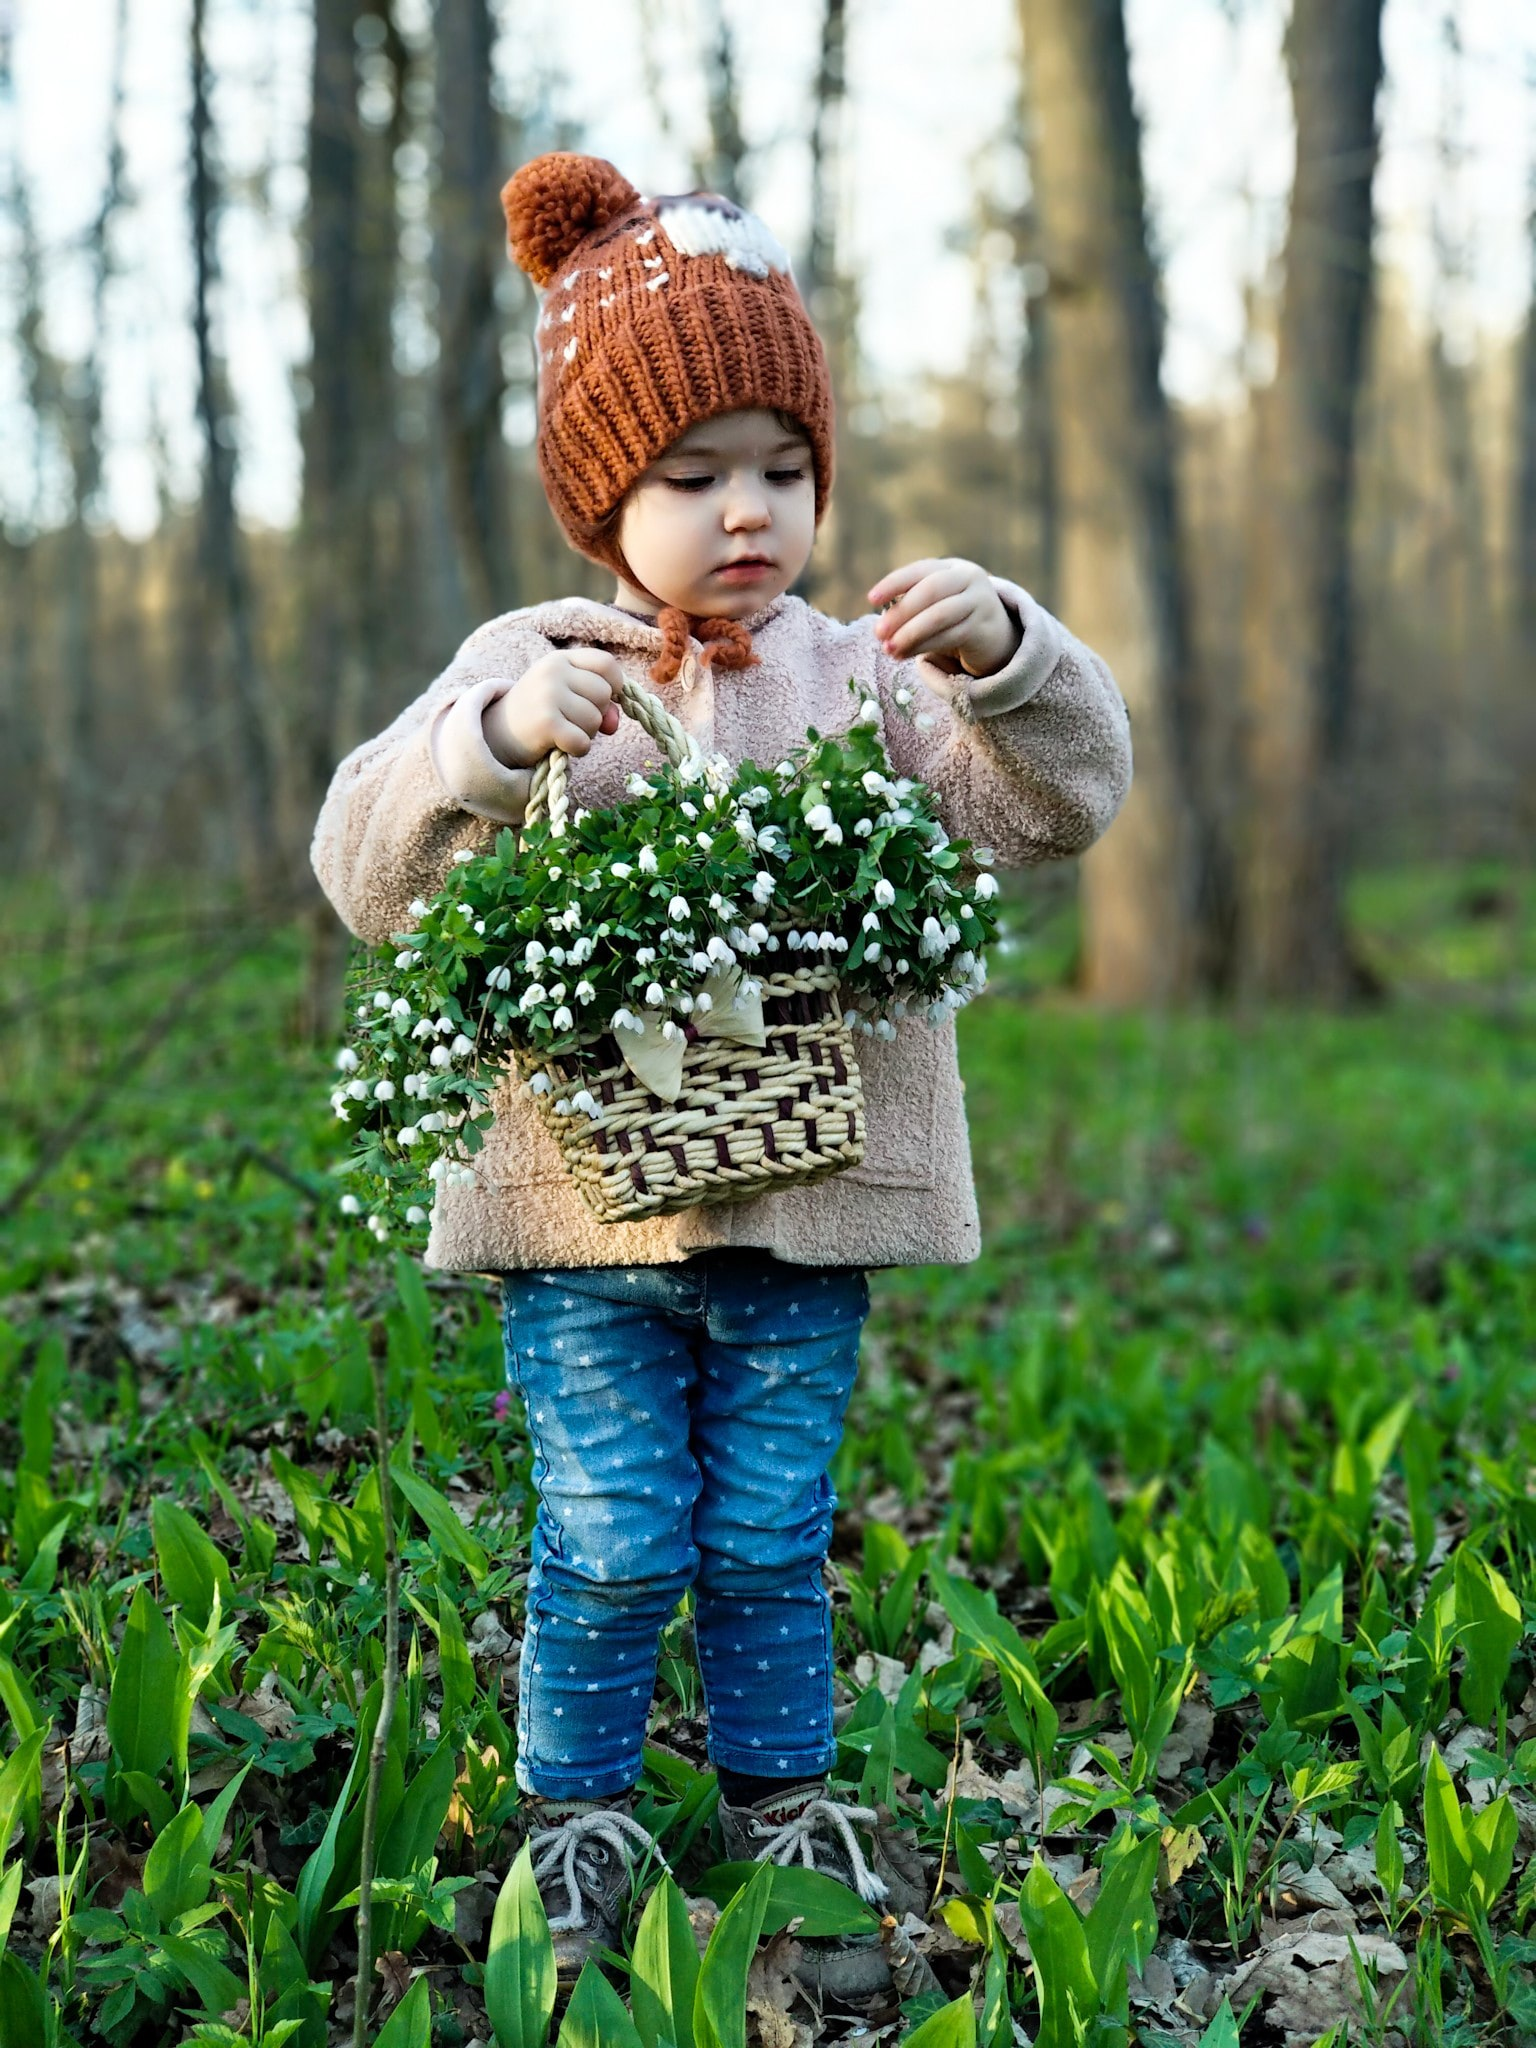 toddler girl holding basket full of flowers in forest